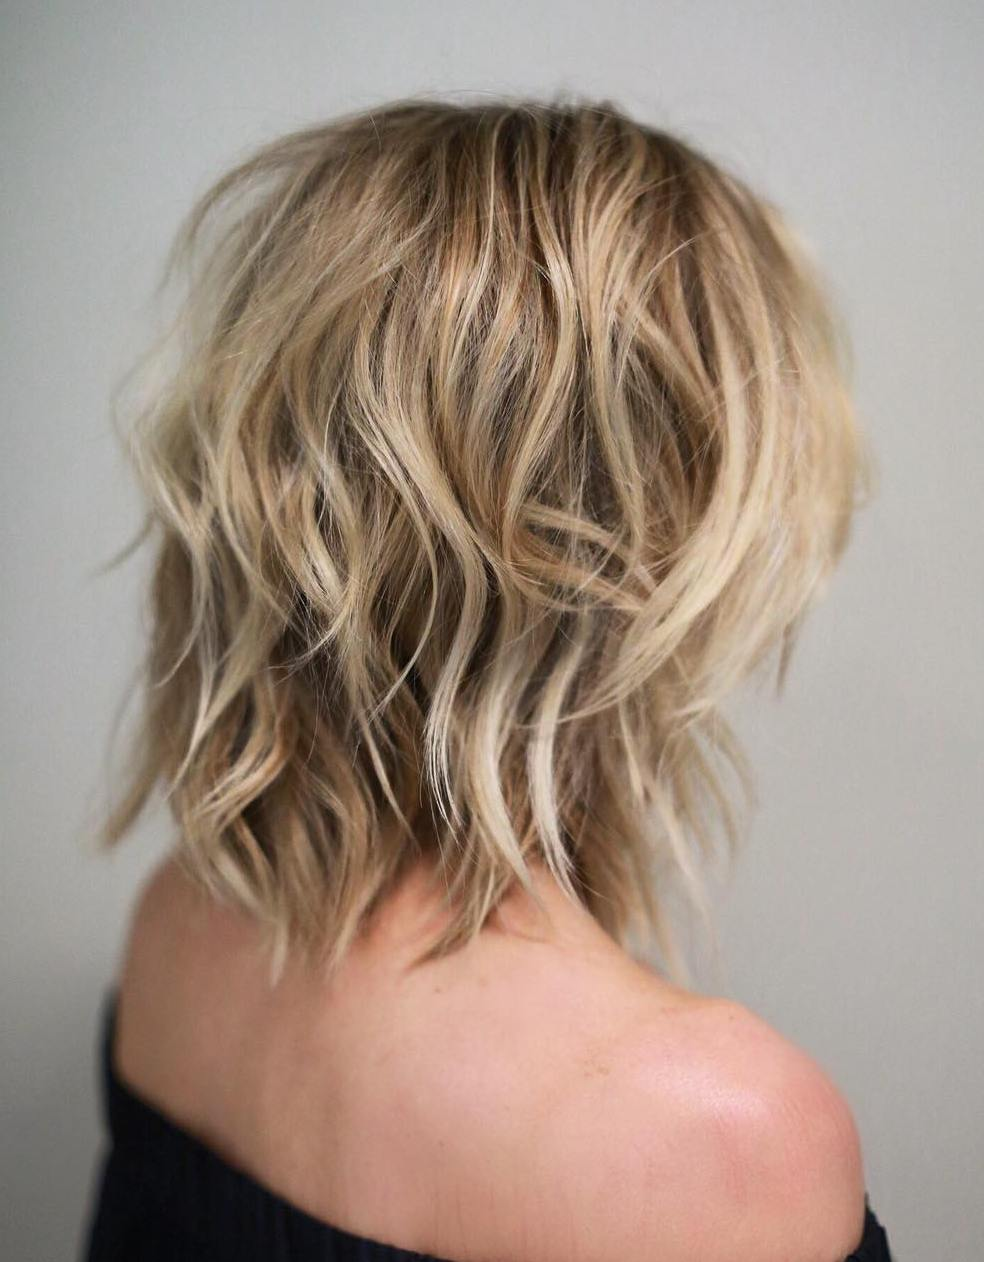 Surprising Shag Haircuts And Hairstyles In 2016 Therighthairstyles Short Hairstyles Gunalazisus